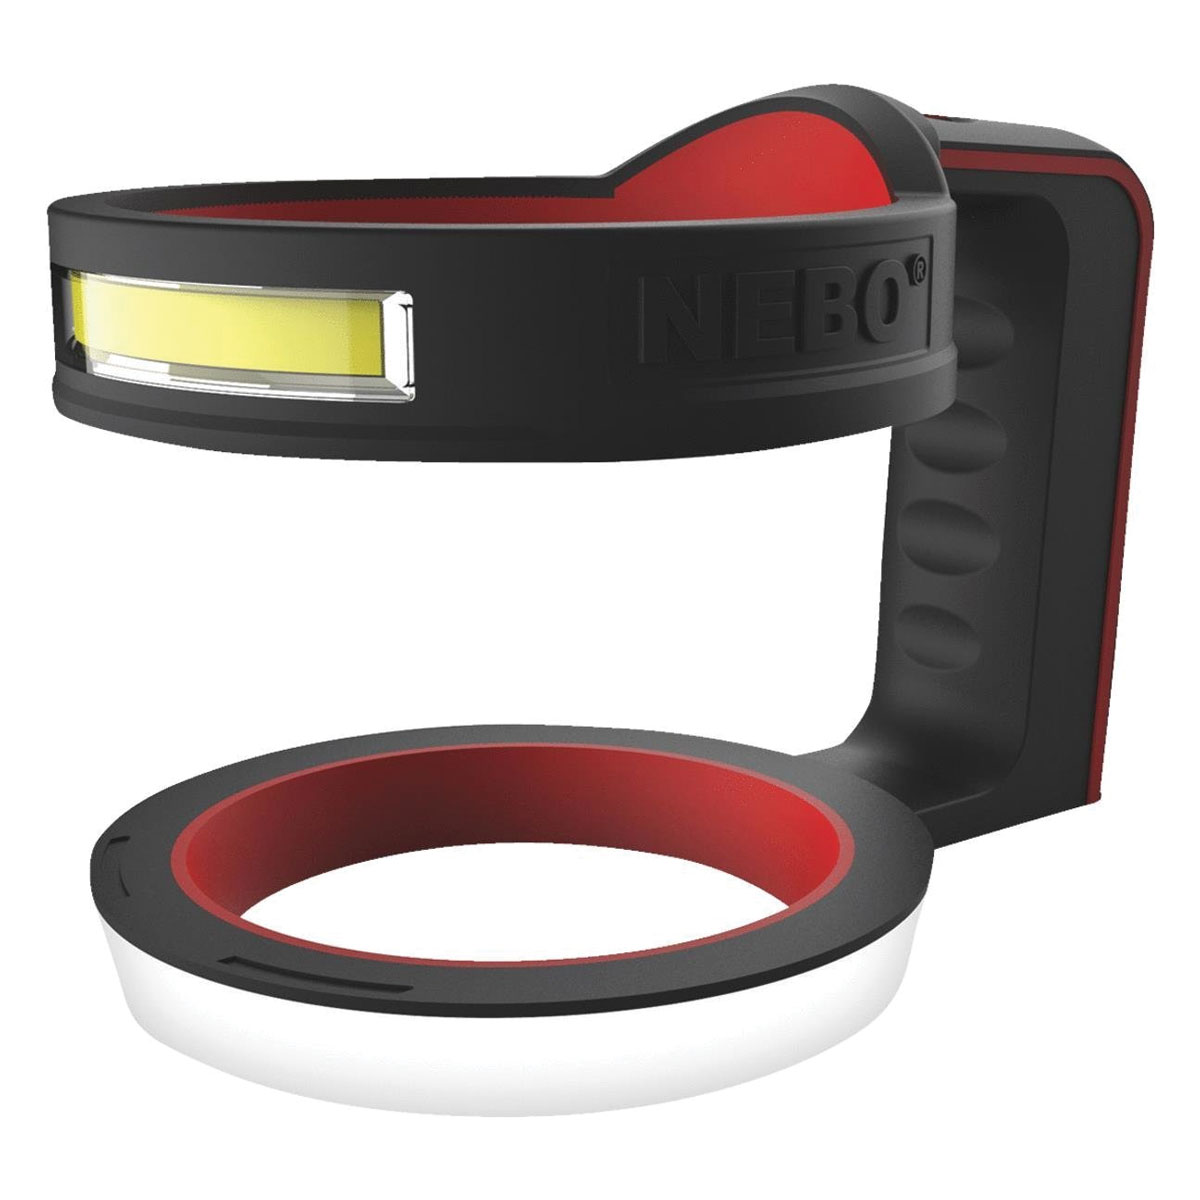 Nebo Glow Light and Handle for 30oz. Tumbler